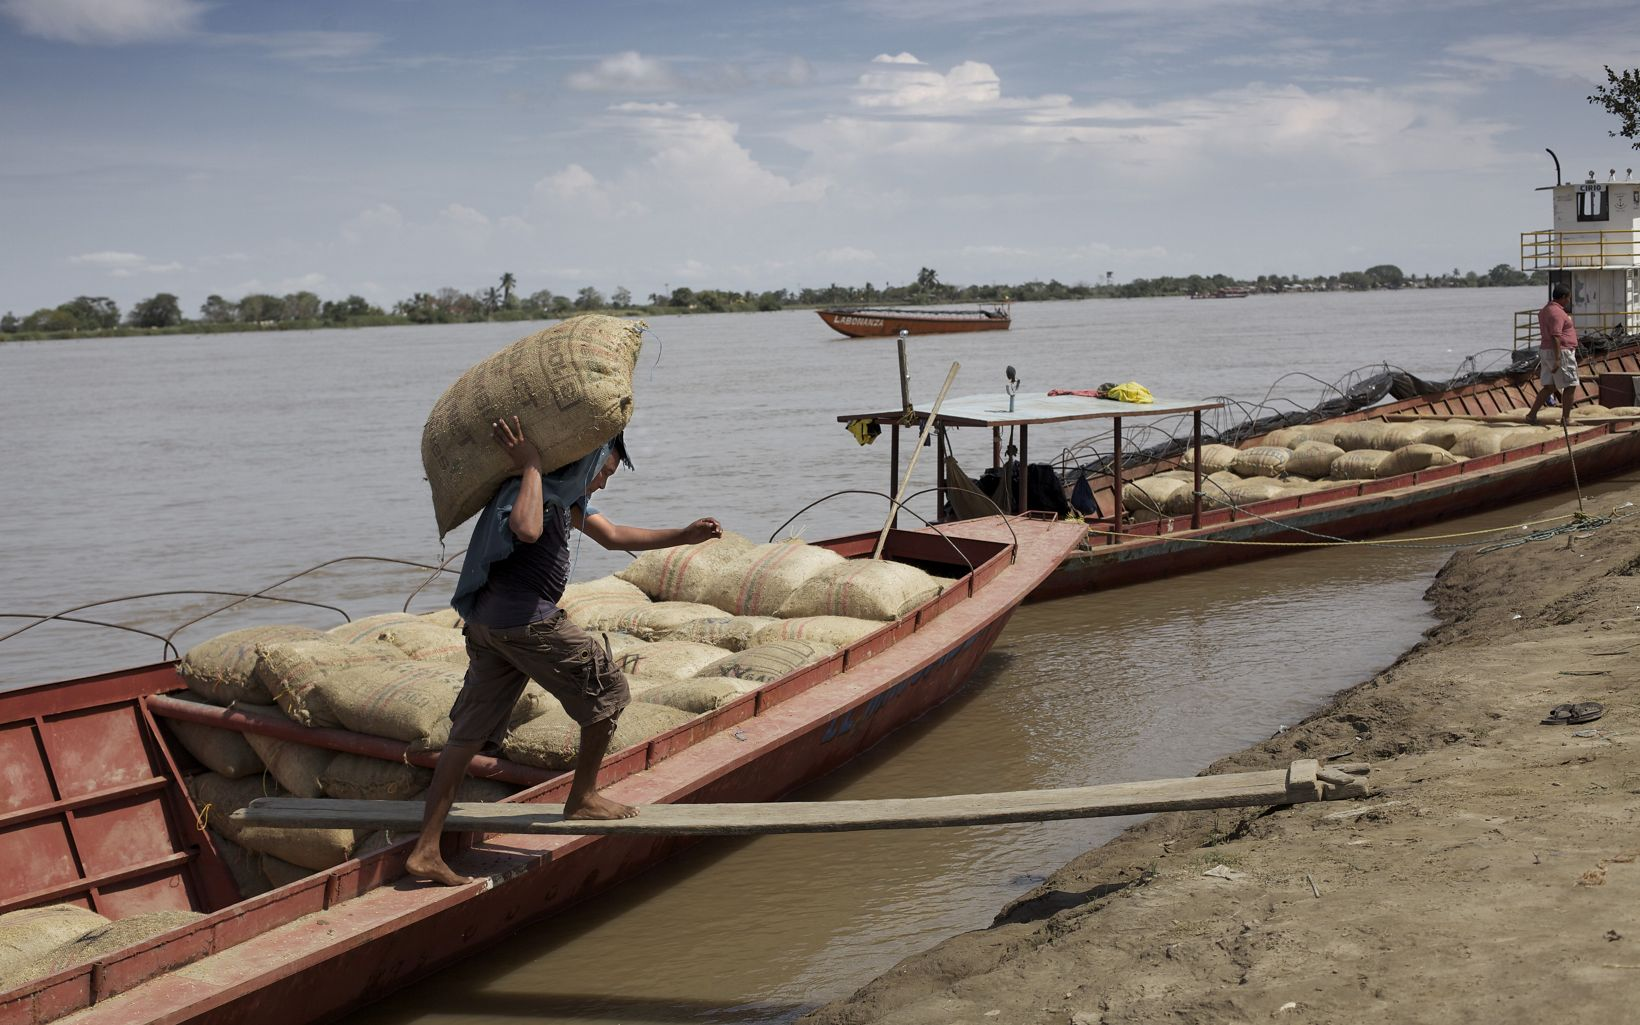 A man unloads goods from his boat on the Magdalena River in Colombia.